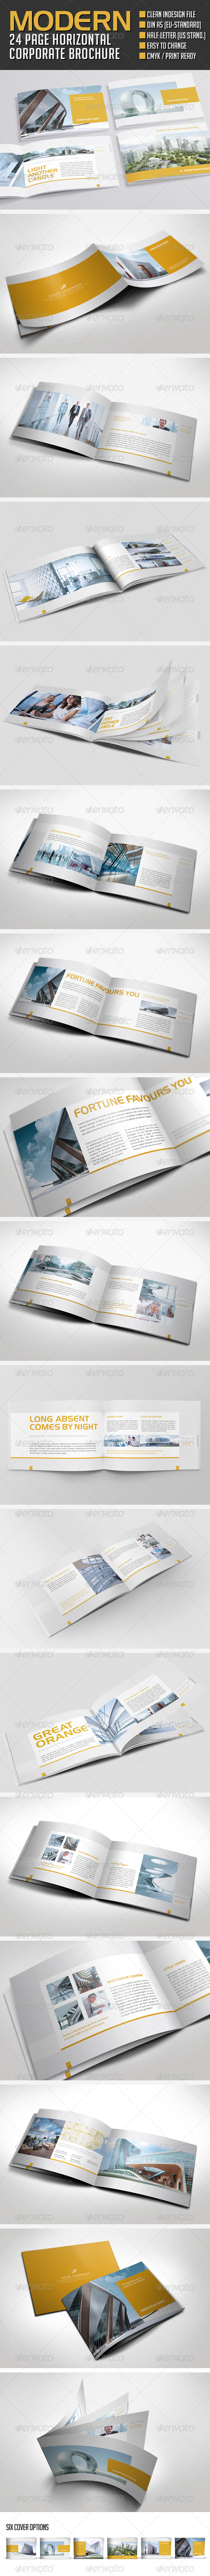 Modern Image Brochure - Corporate Brochures